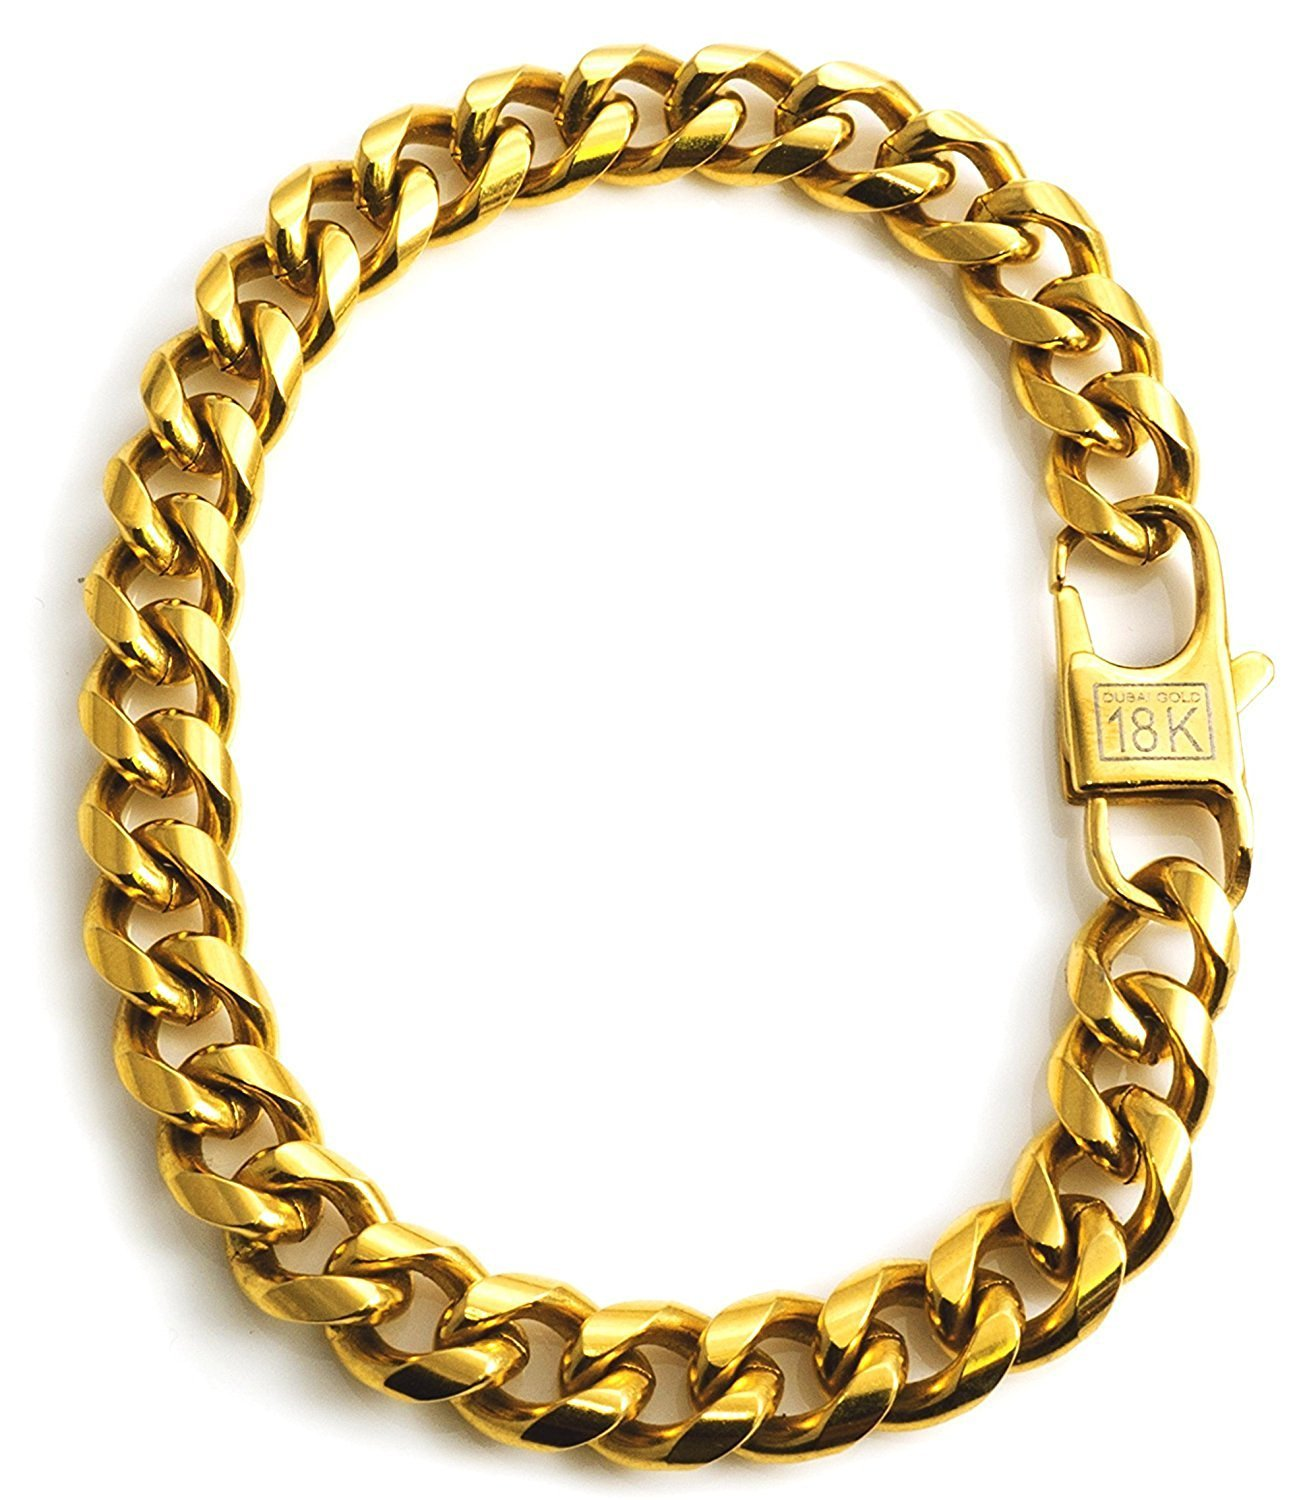 Solid Cuban Link Bracelet In Premium Gold Large 9.5'' (For Large Wrists)